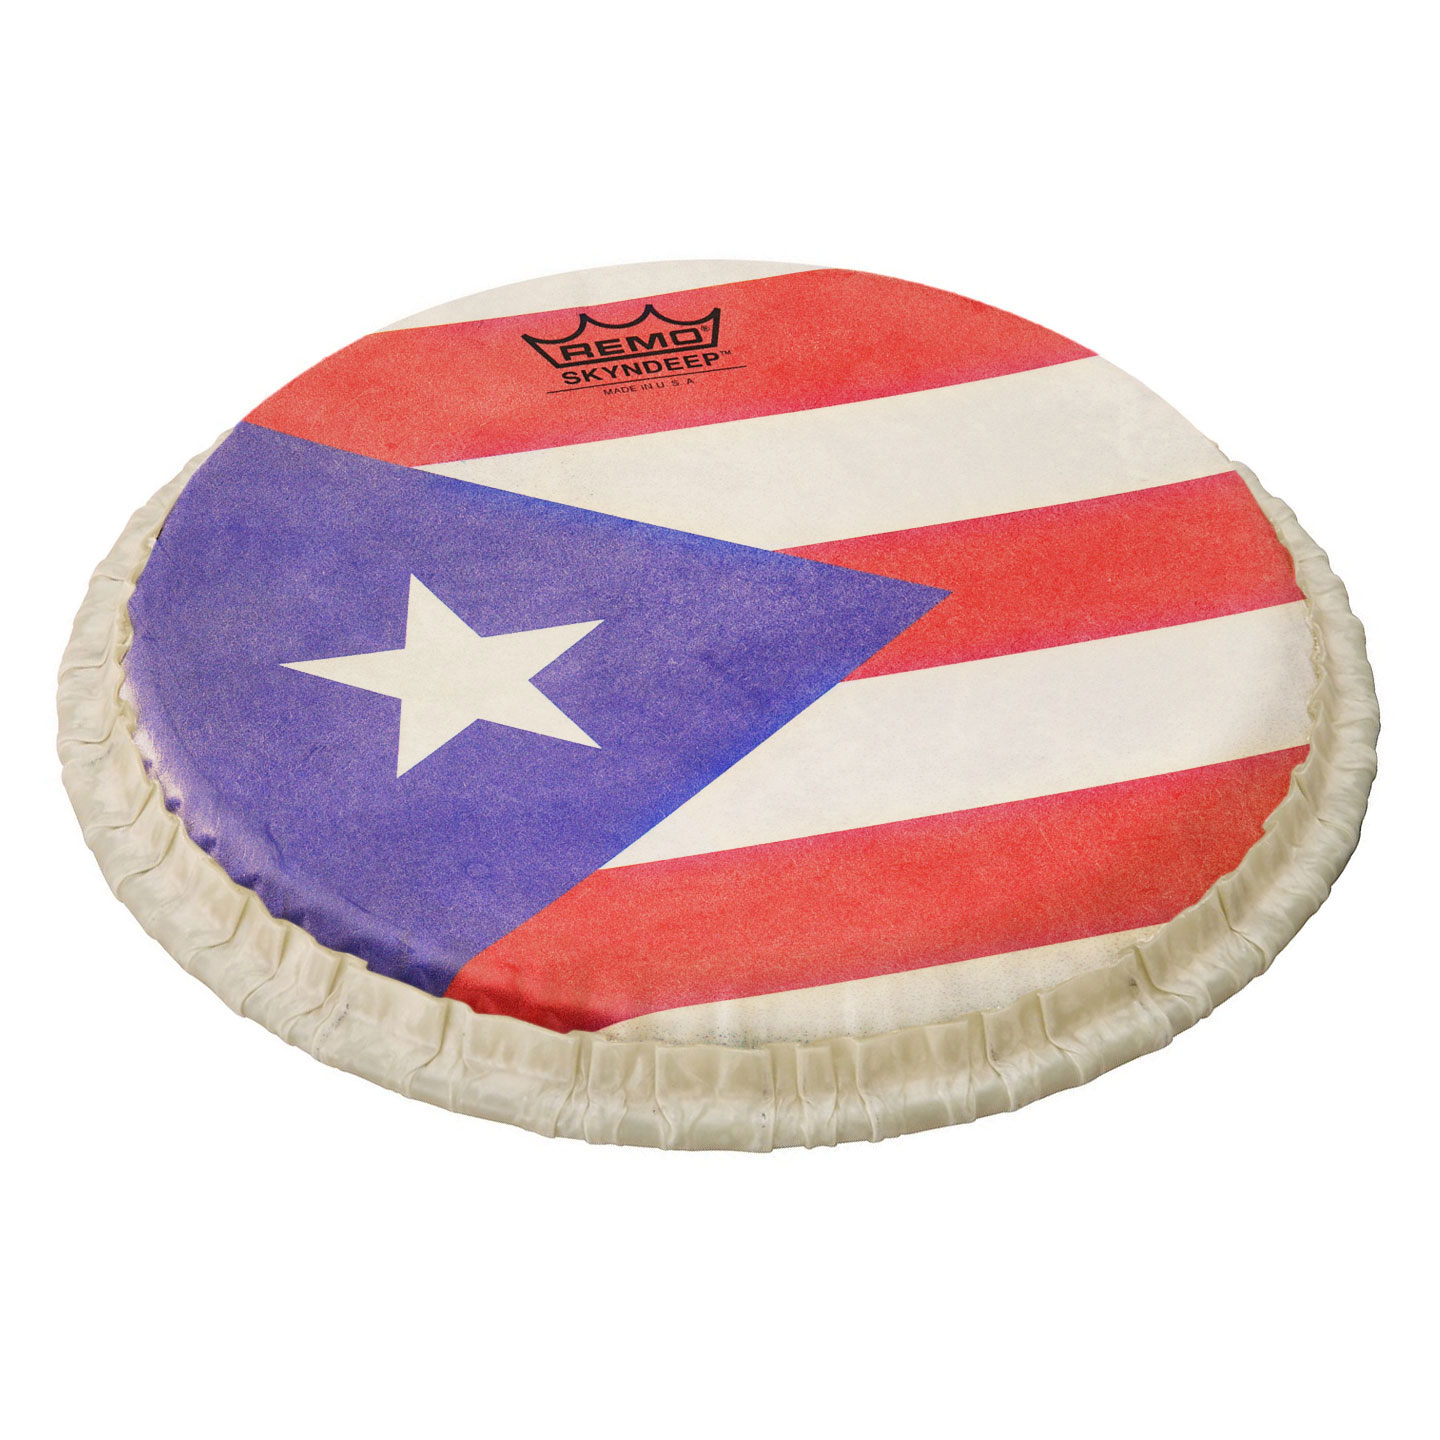 "Remo 9"" Tucked Skyndeep Bongo Drum Head with Puerto Rican Flag Graphic"